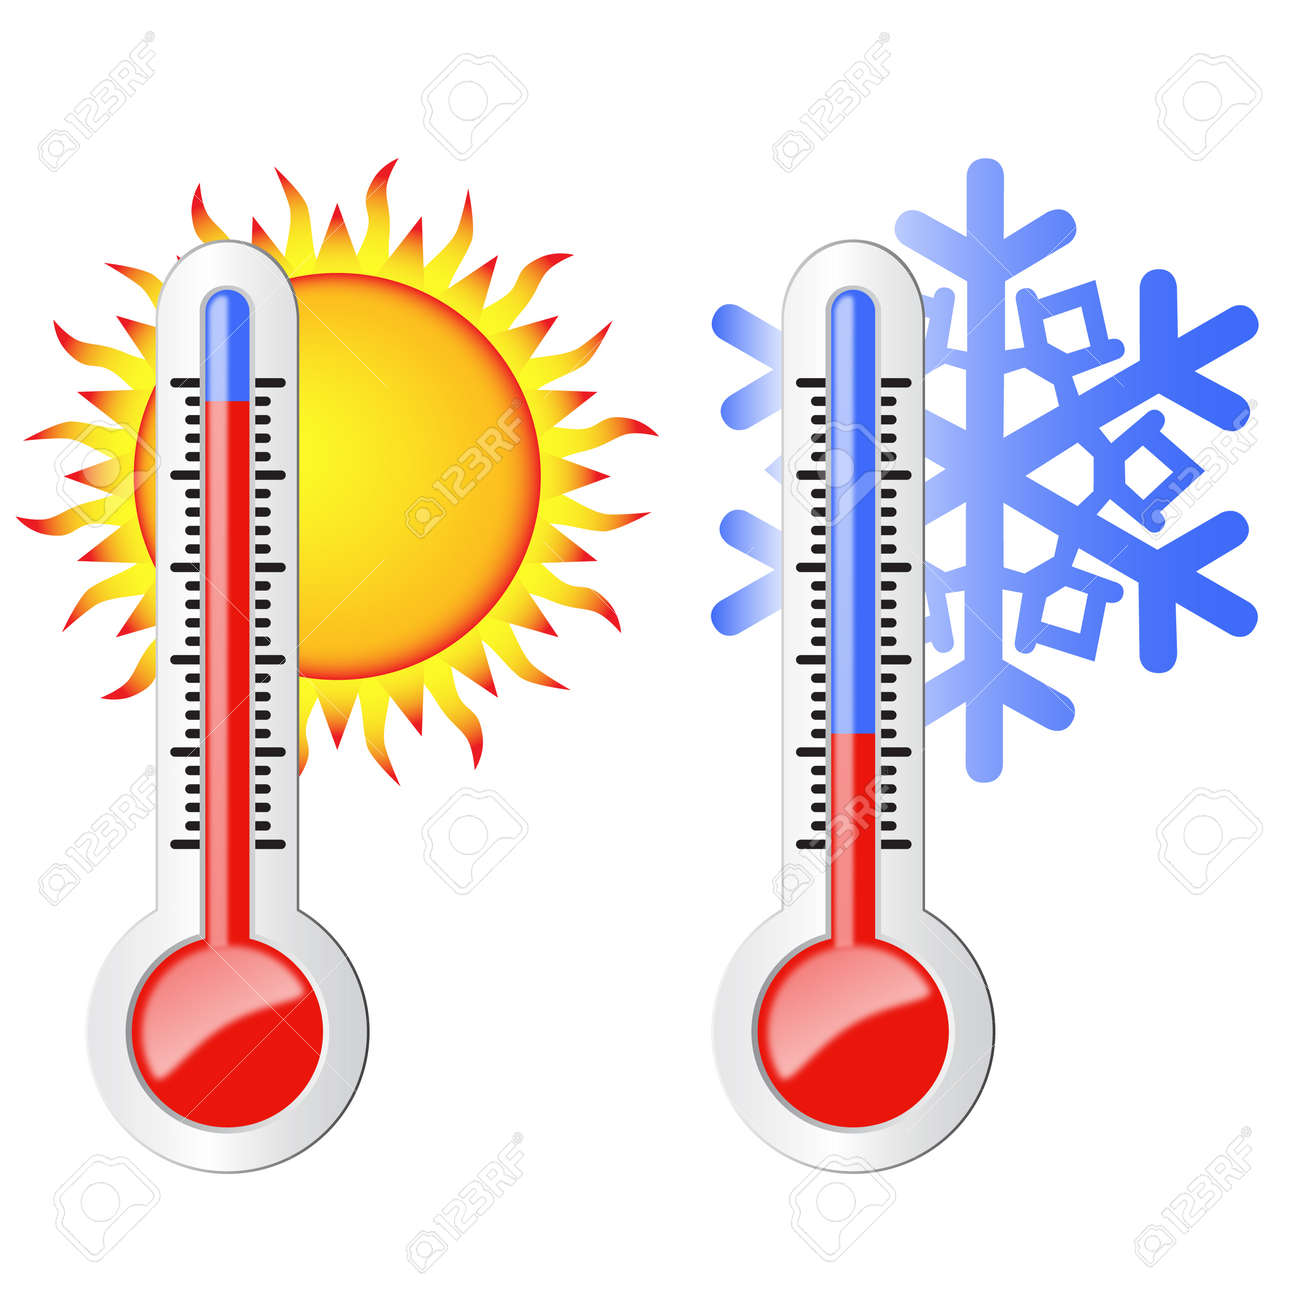 Two Thermometers High And Low Temperature Symbolize The Heat And Cold Sun And Snowflake Stock